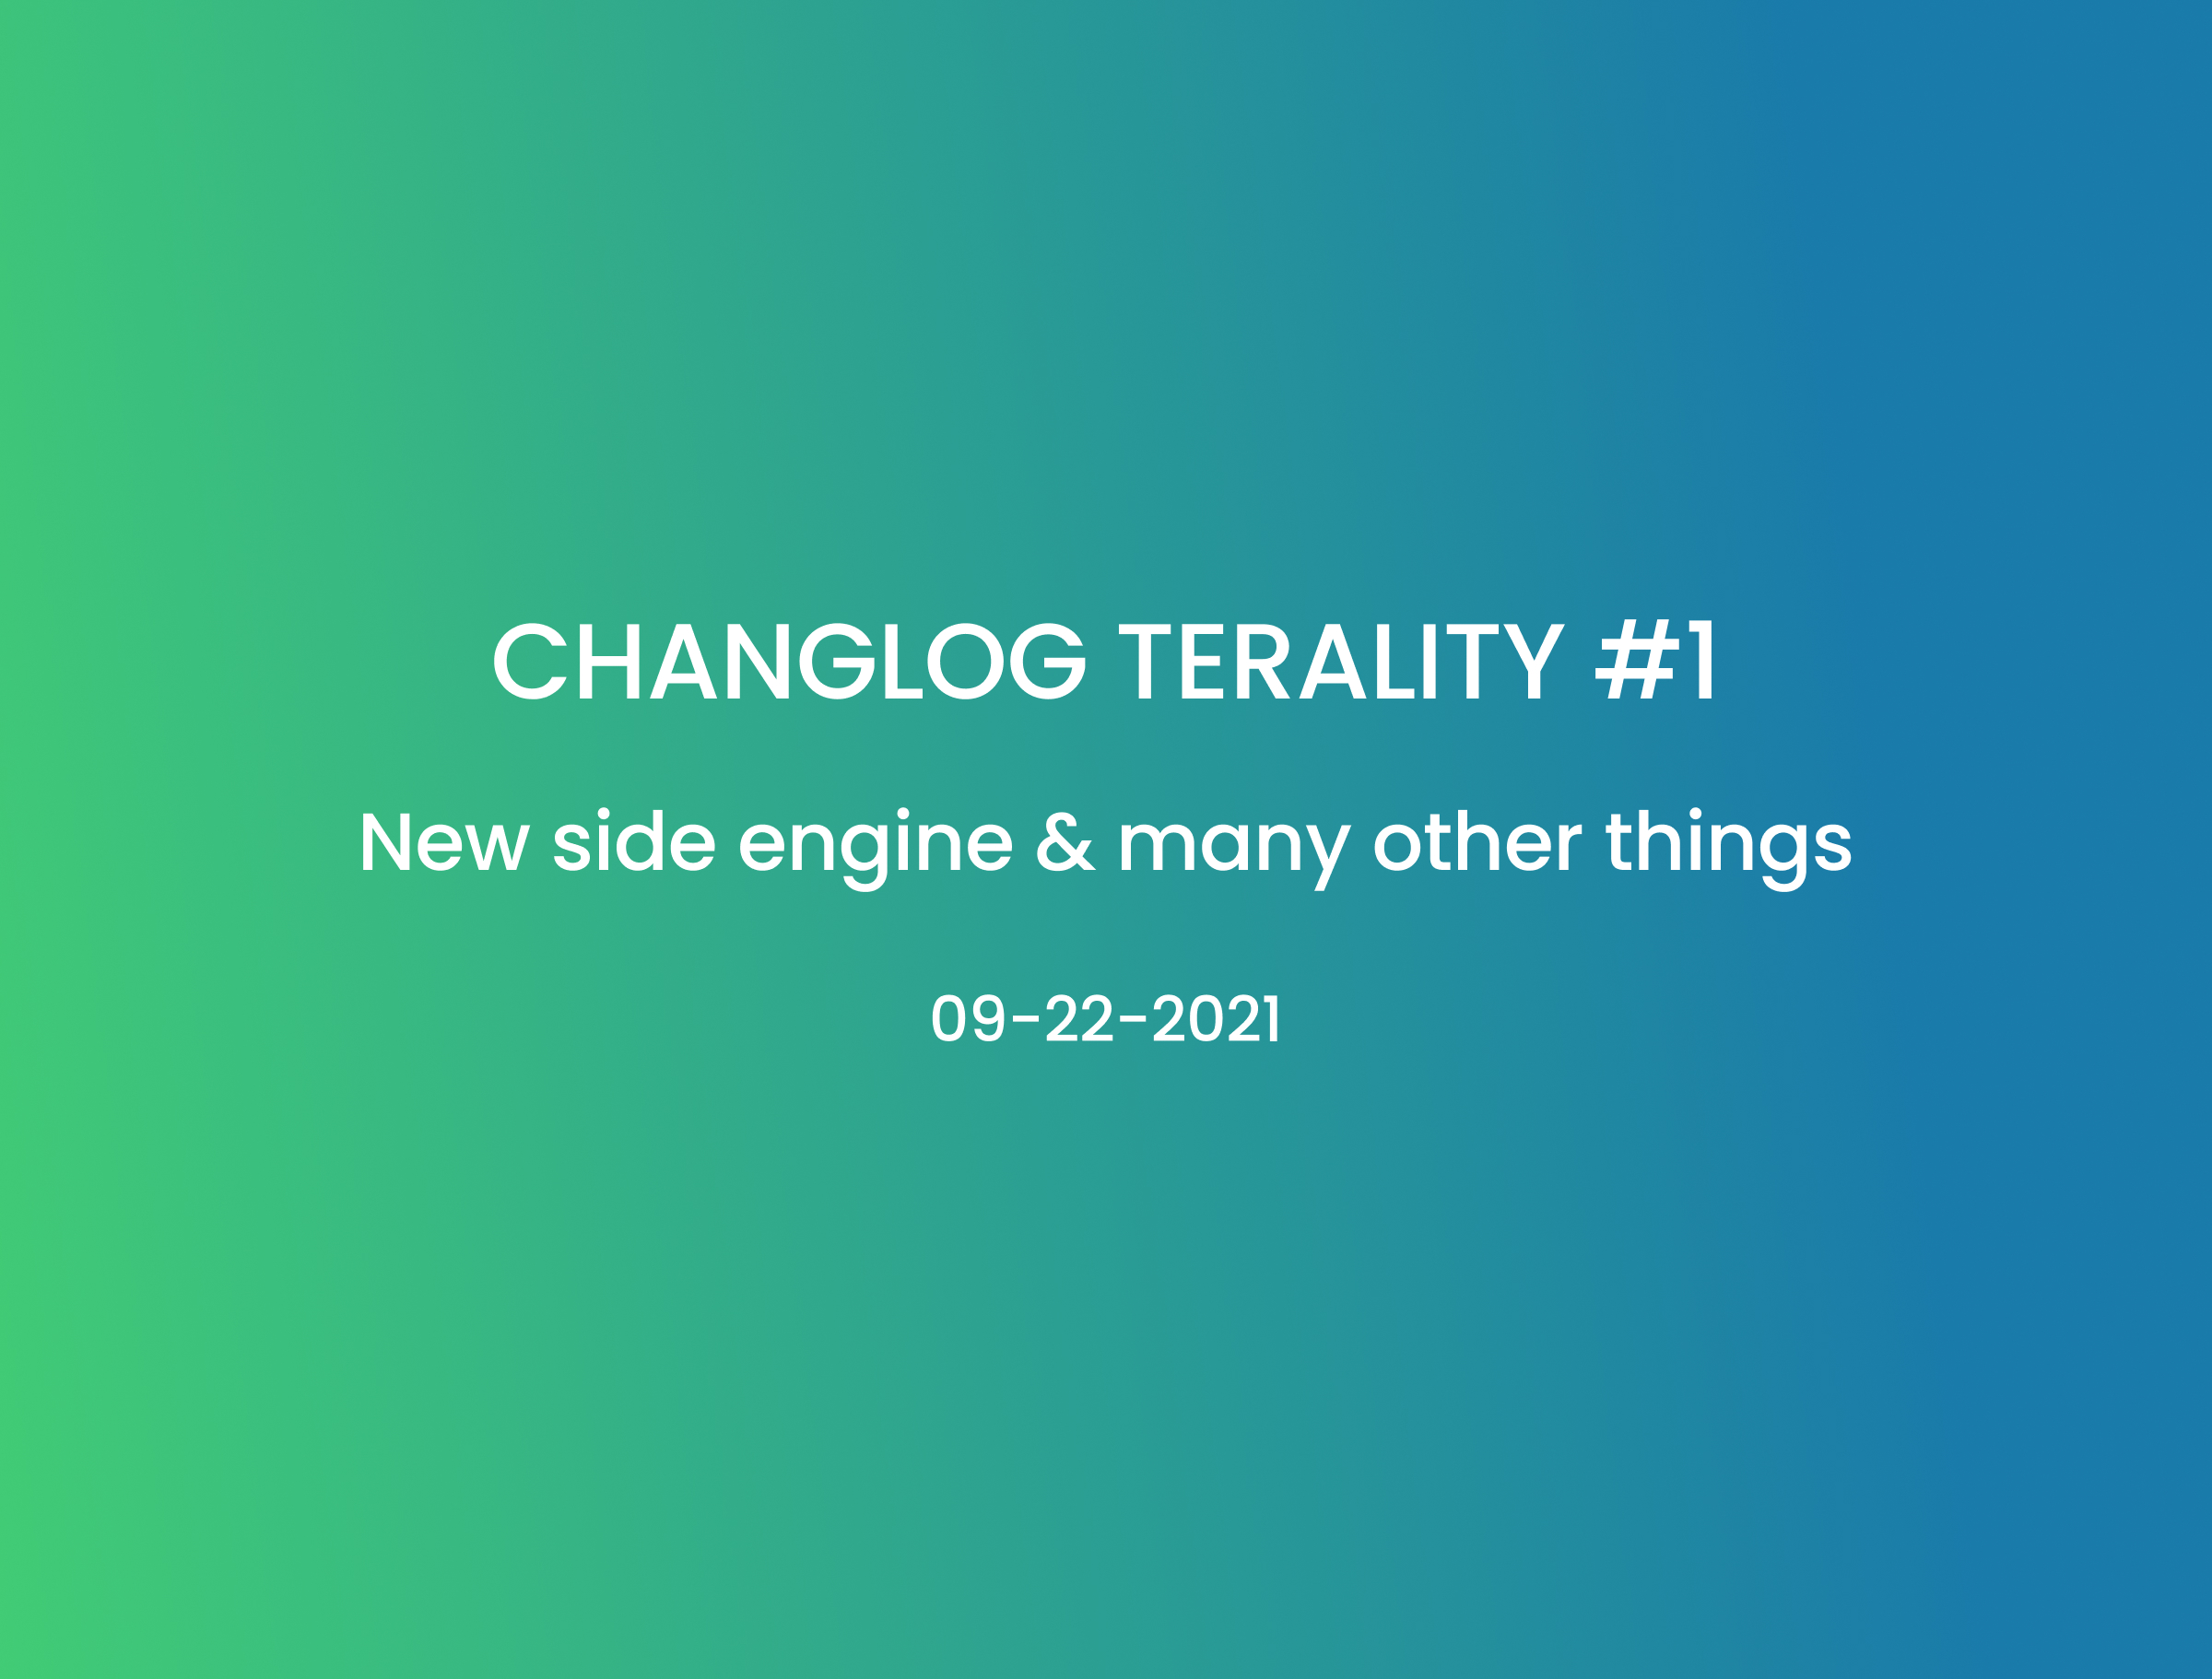 Changelog Terality #1: Release of the side engine and many other things